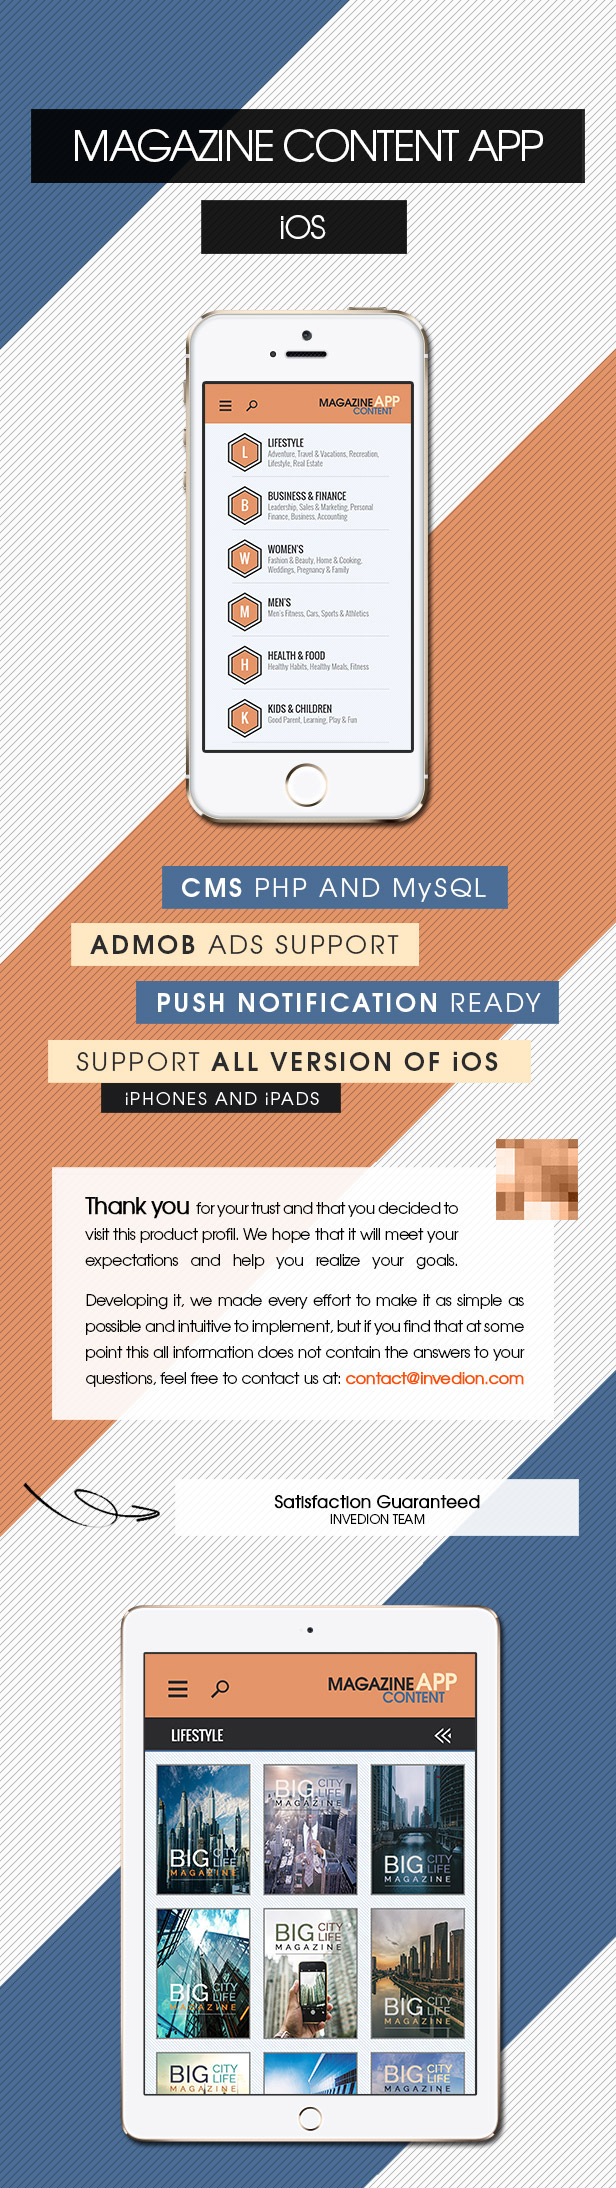 Magazine Content App With CMS - iOS [ AdMob | Push Notifications | Offline Storage ] - 2